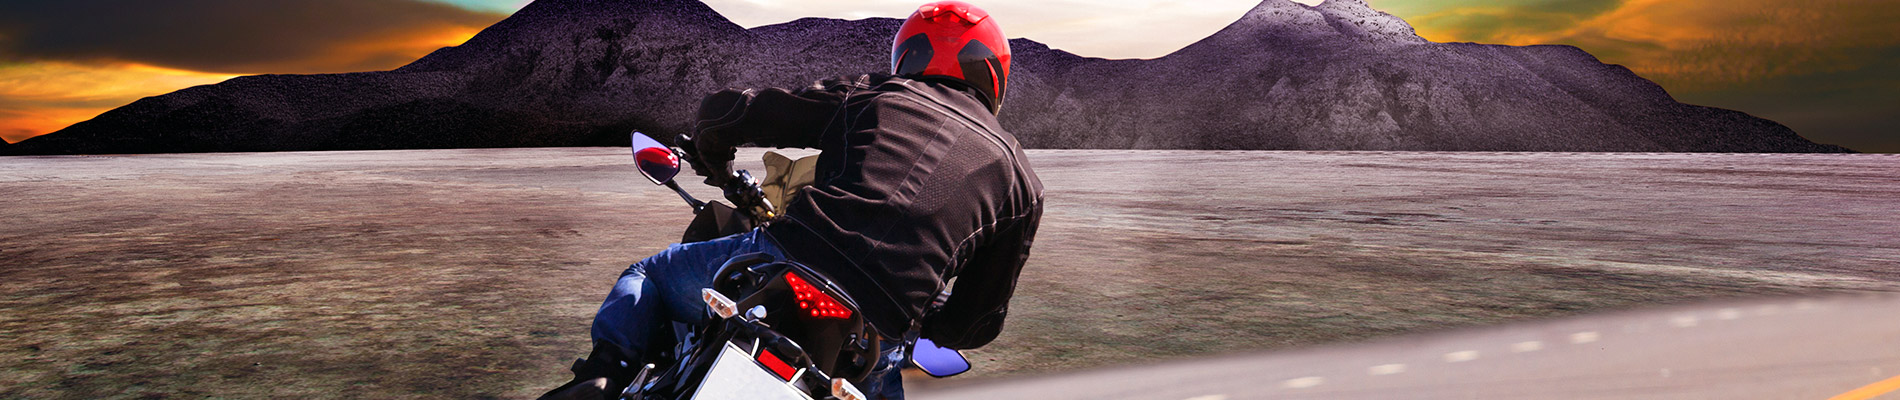 A Primer on California Motorcycle Safety